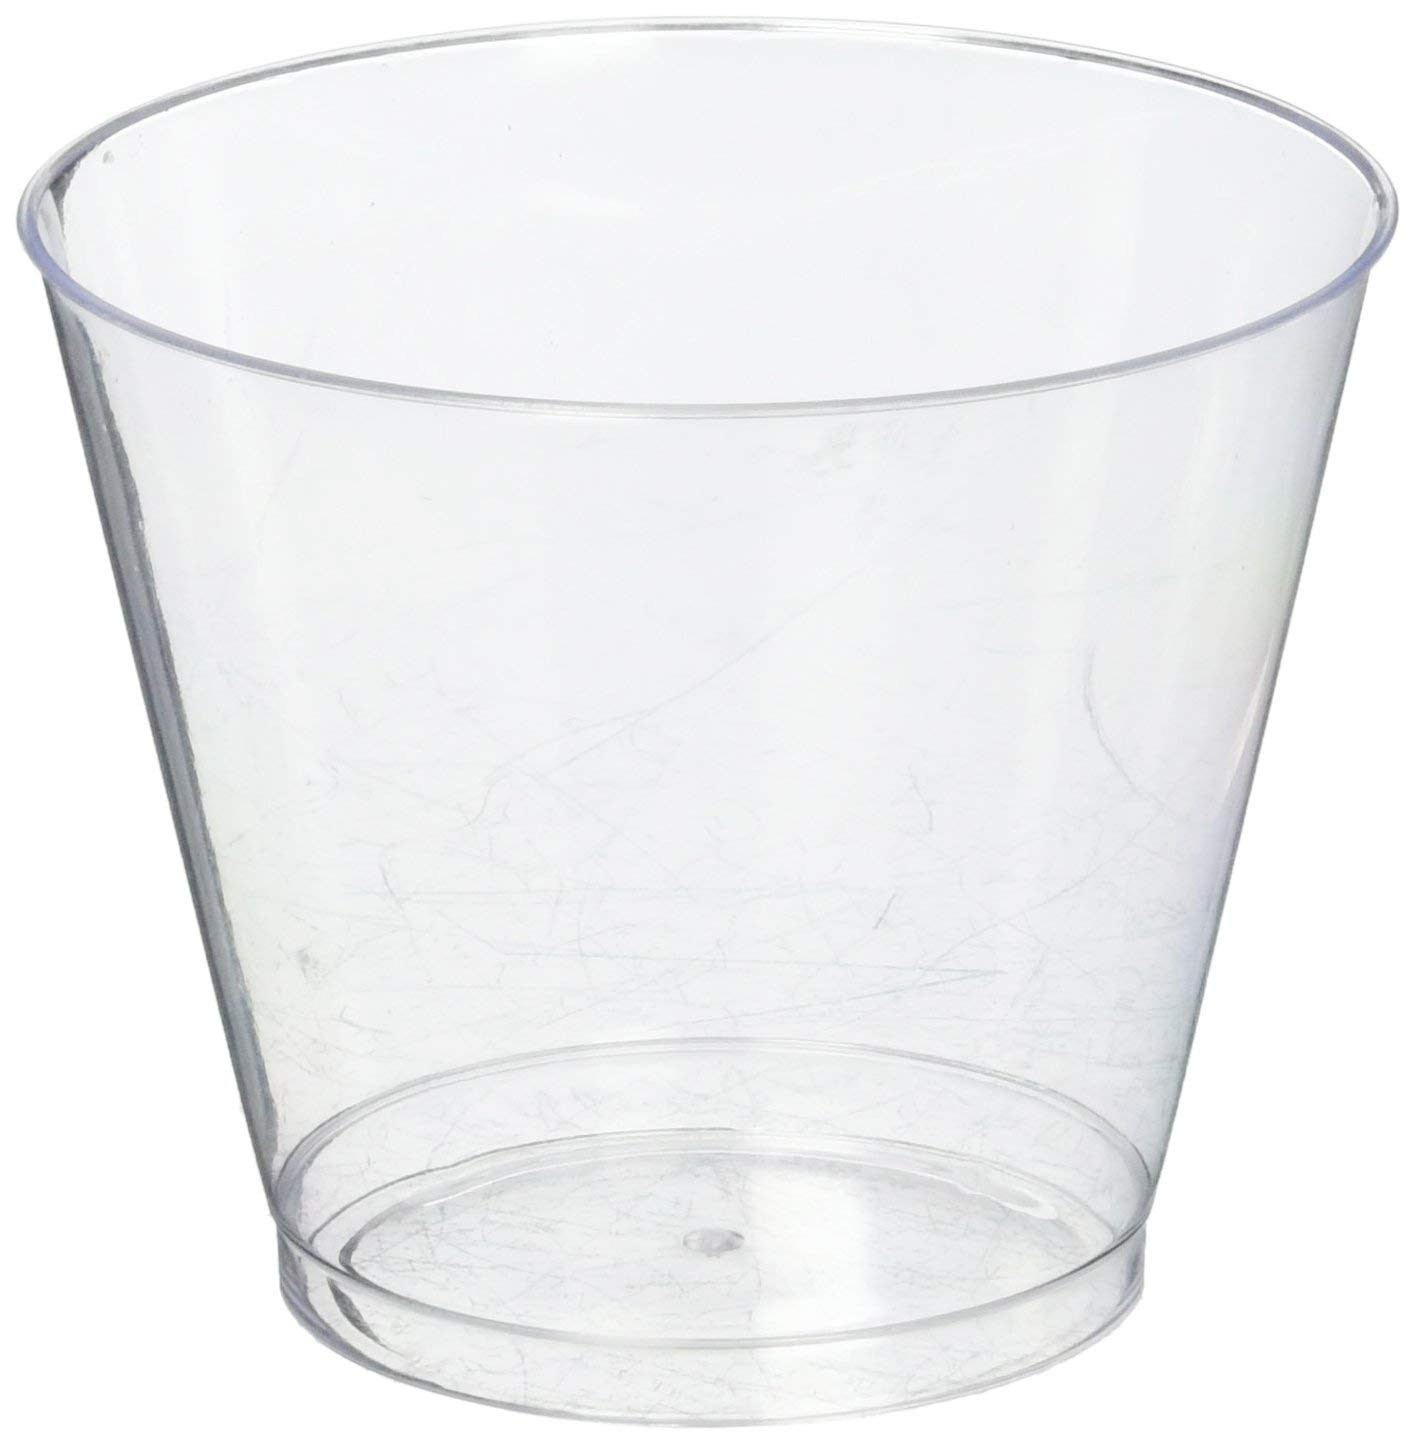 Clear Plastic Cylinder Vases wholesale Of Amazon Com Hard Plastic Tumblers 9 Oz Party Cups Old Fashioned Regarding Amazon Com Hard Plastic Tumblers 9 Oz Party Cups Old Fashioned Glass 100 Count Drinking Glasses Crystal Clear Kitchen Dining